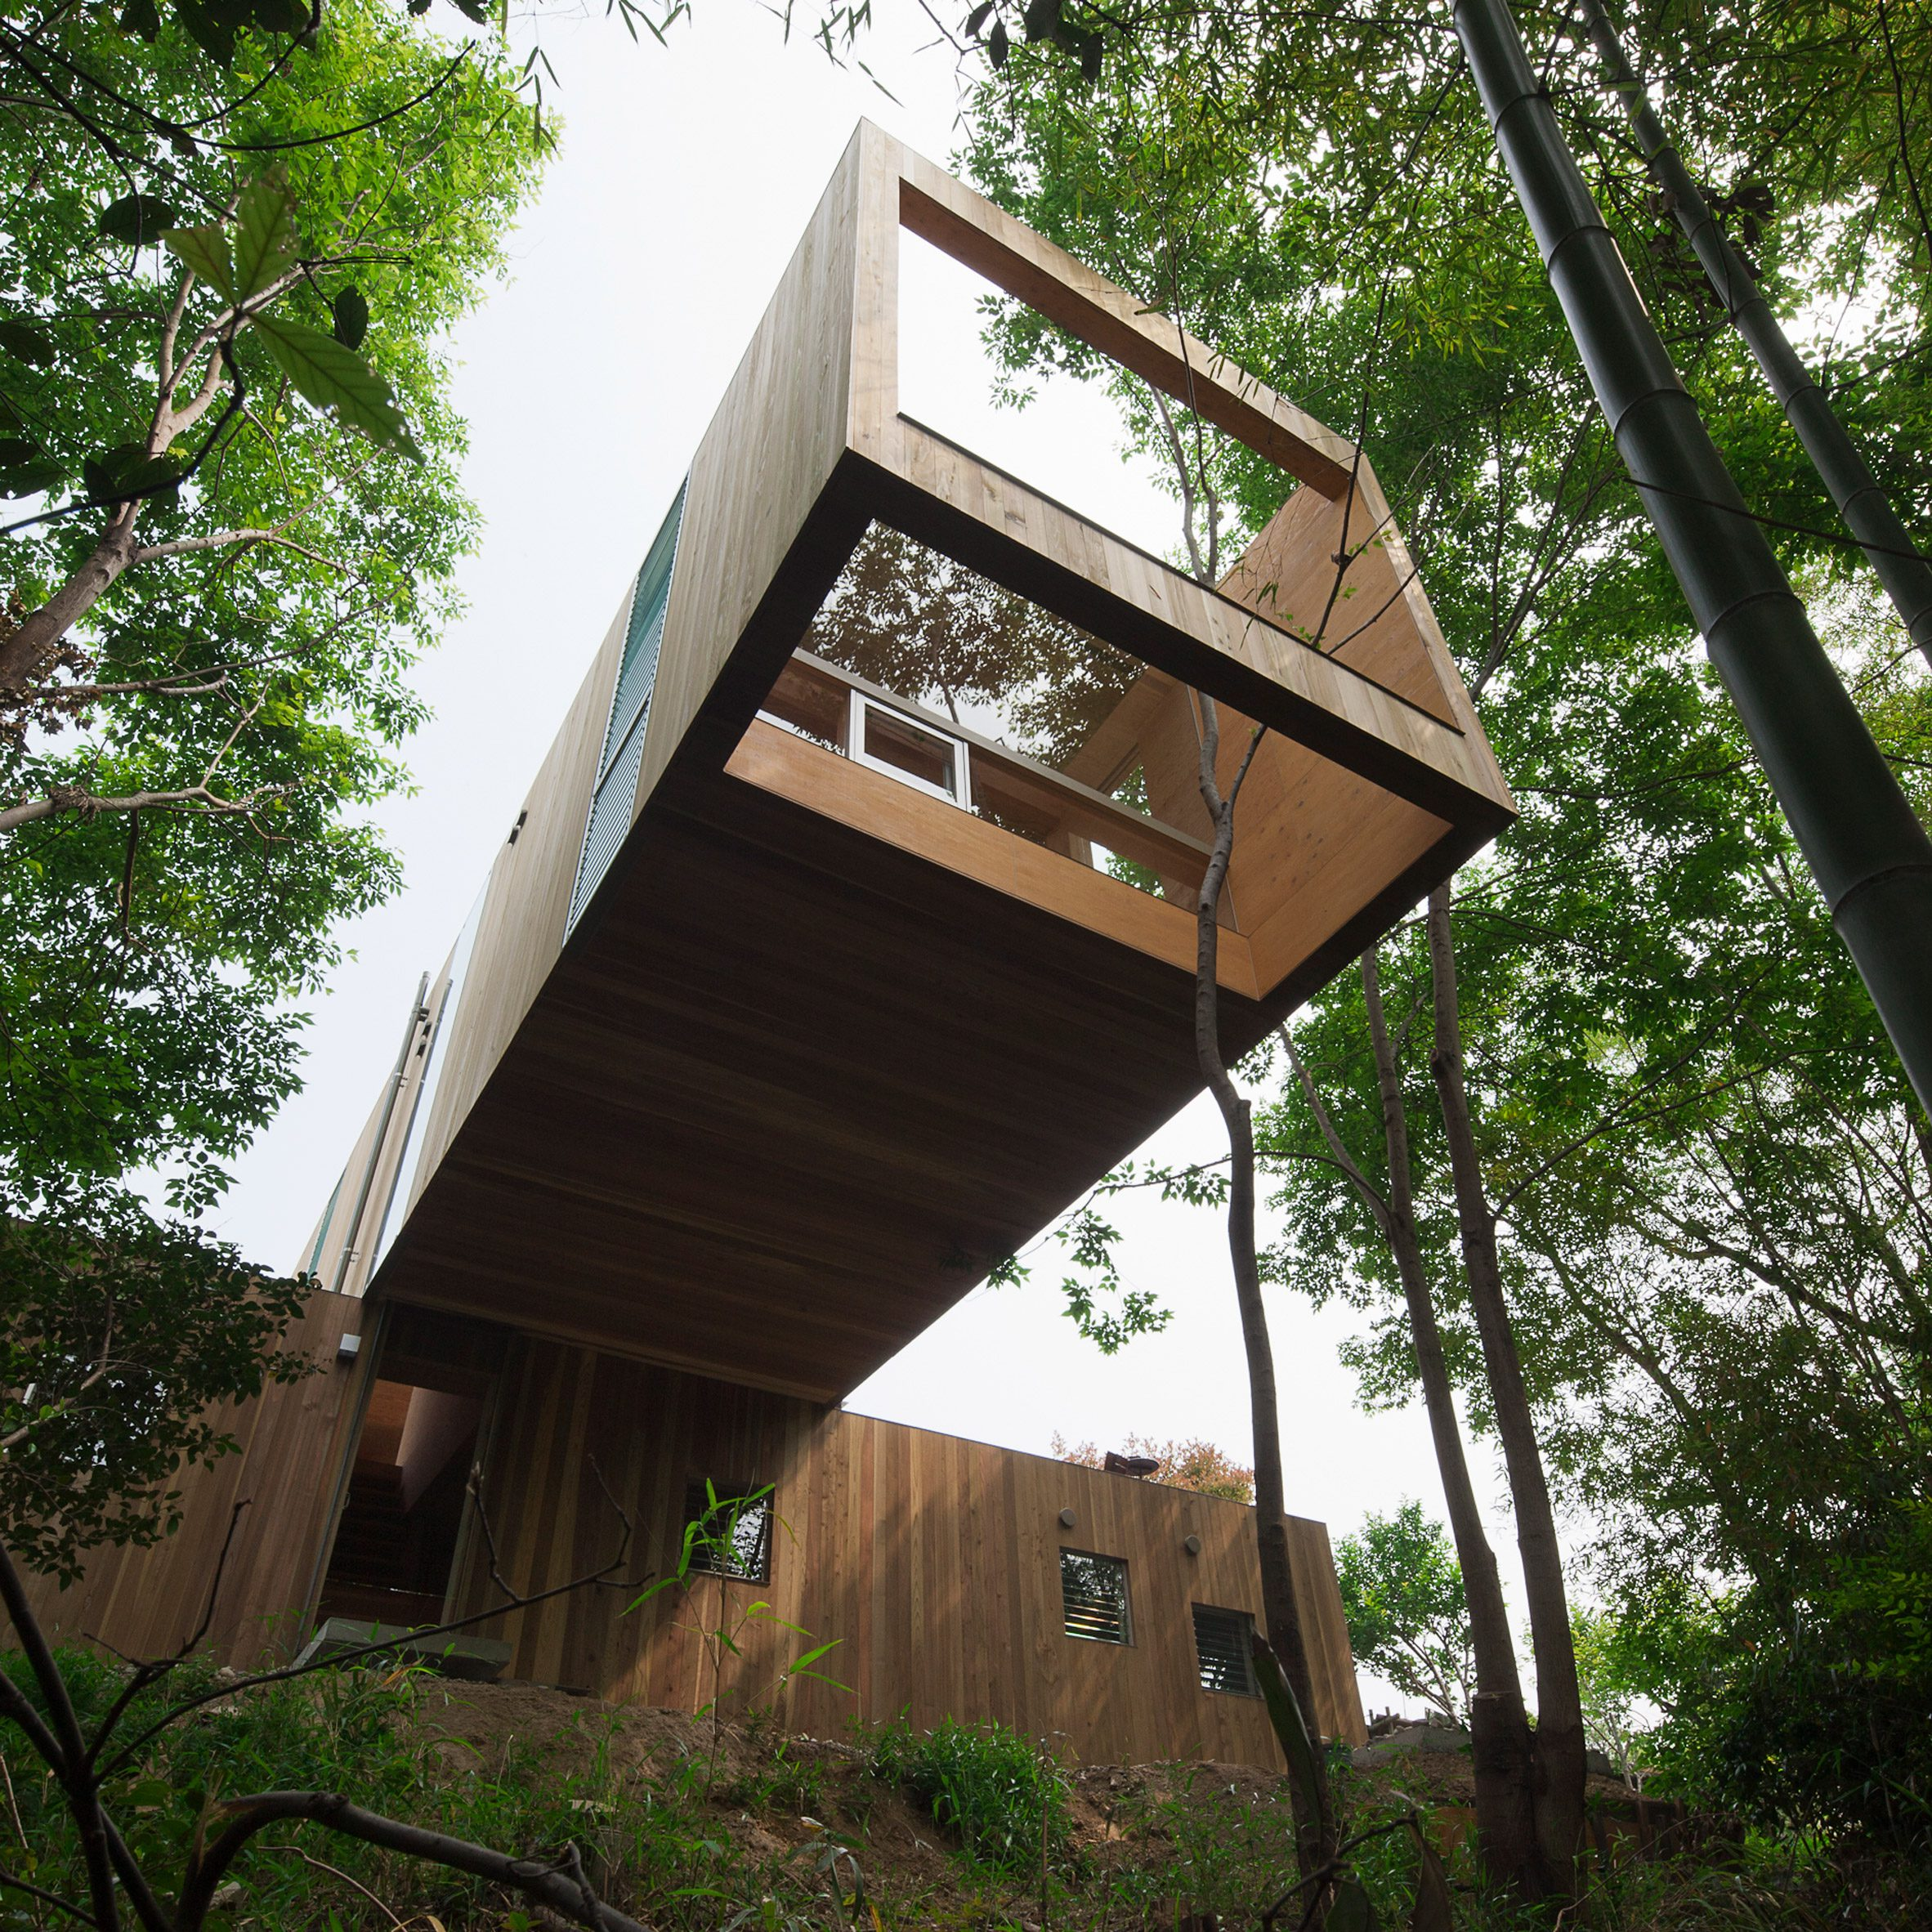 +node is a wooden house in Hiroshima Prefecture, Japan